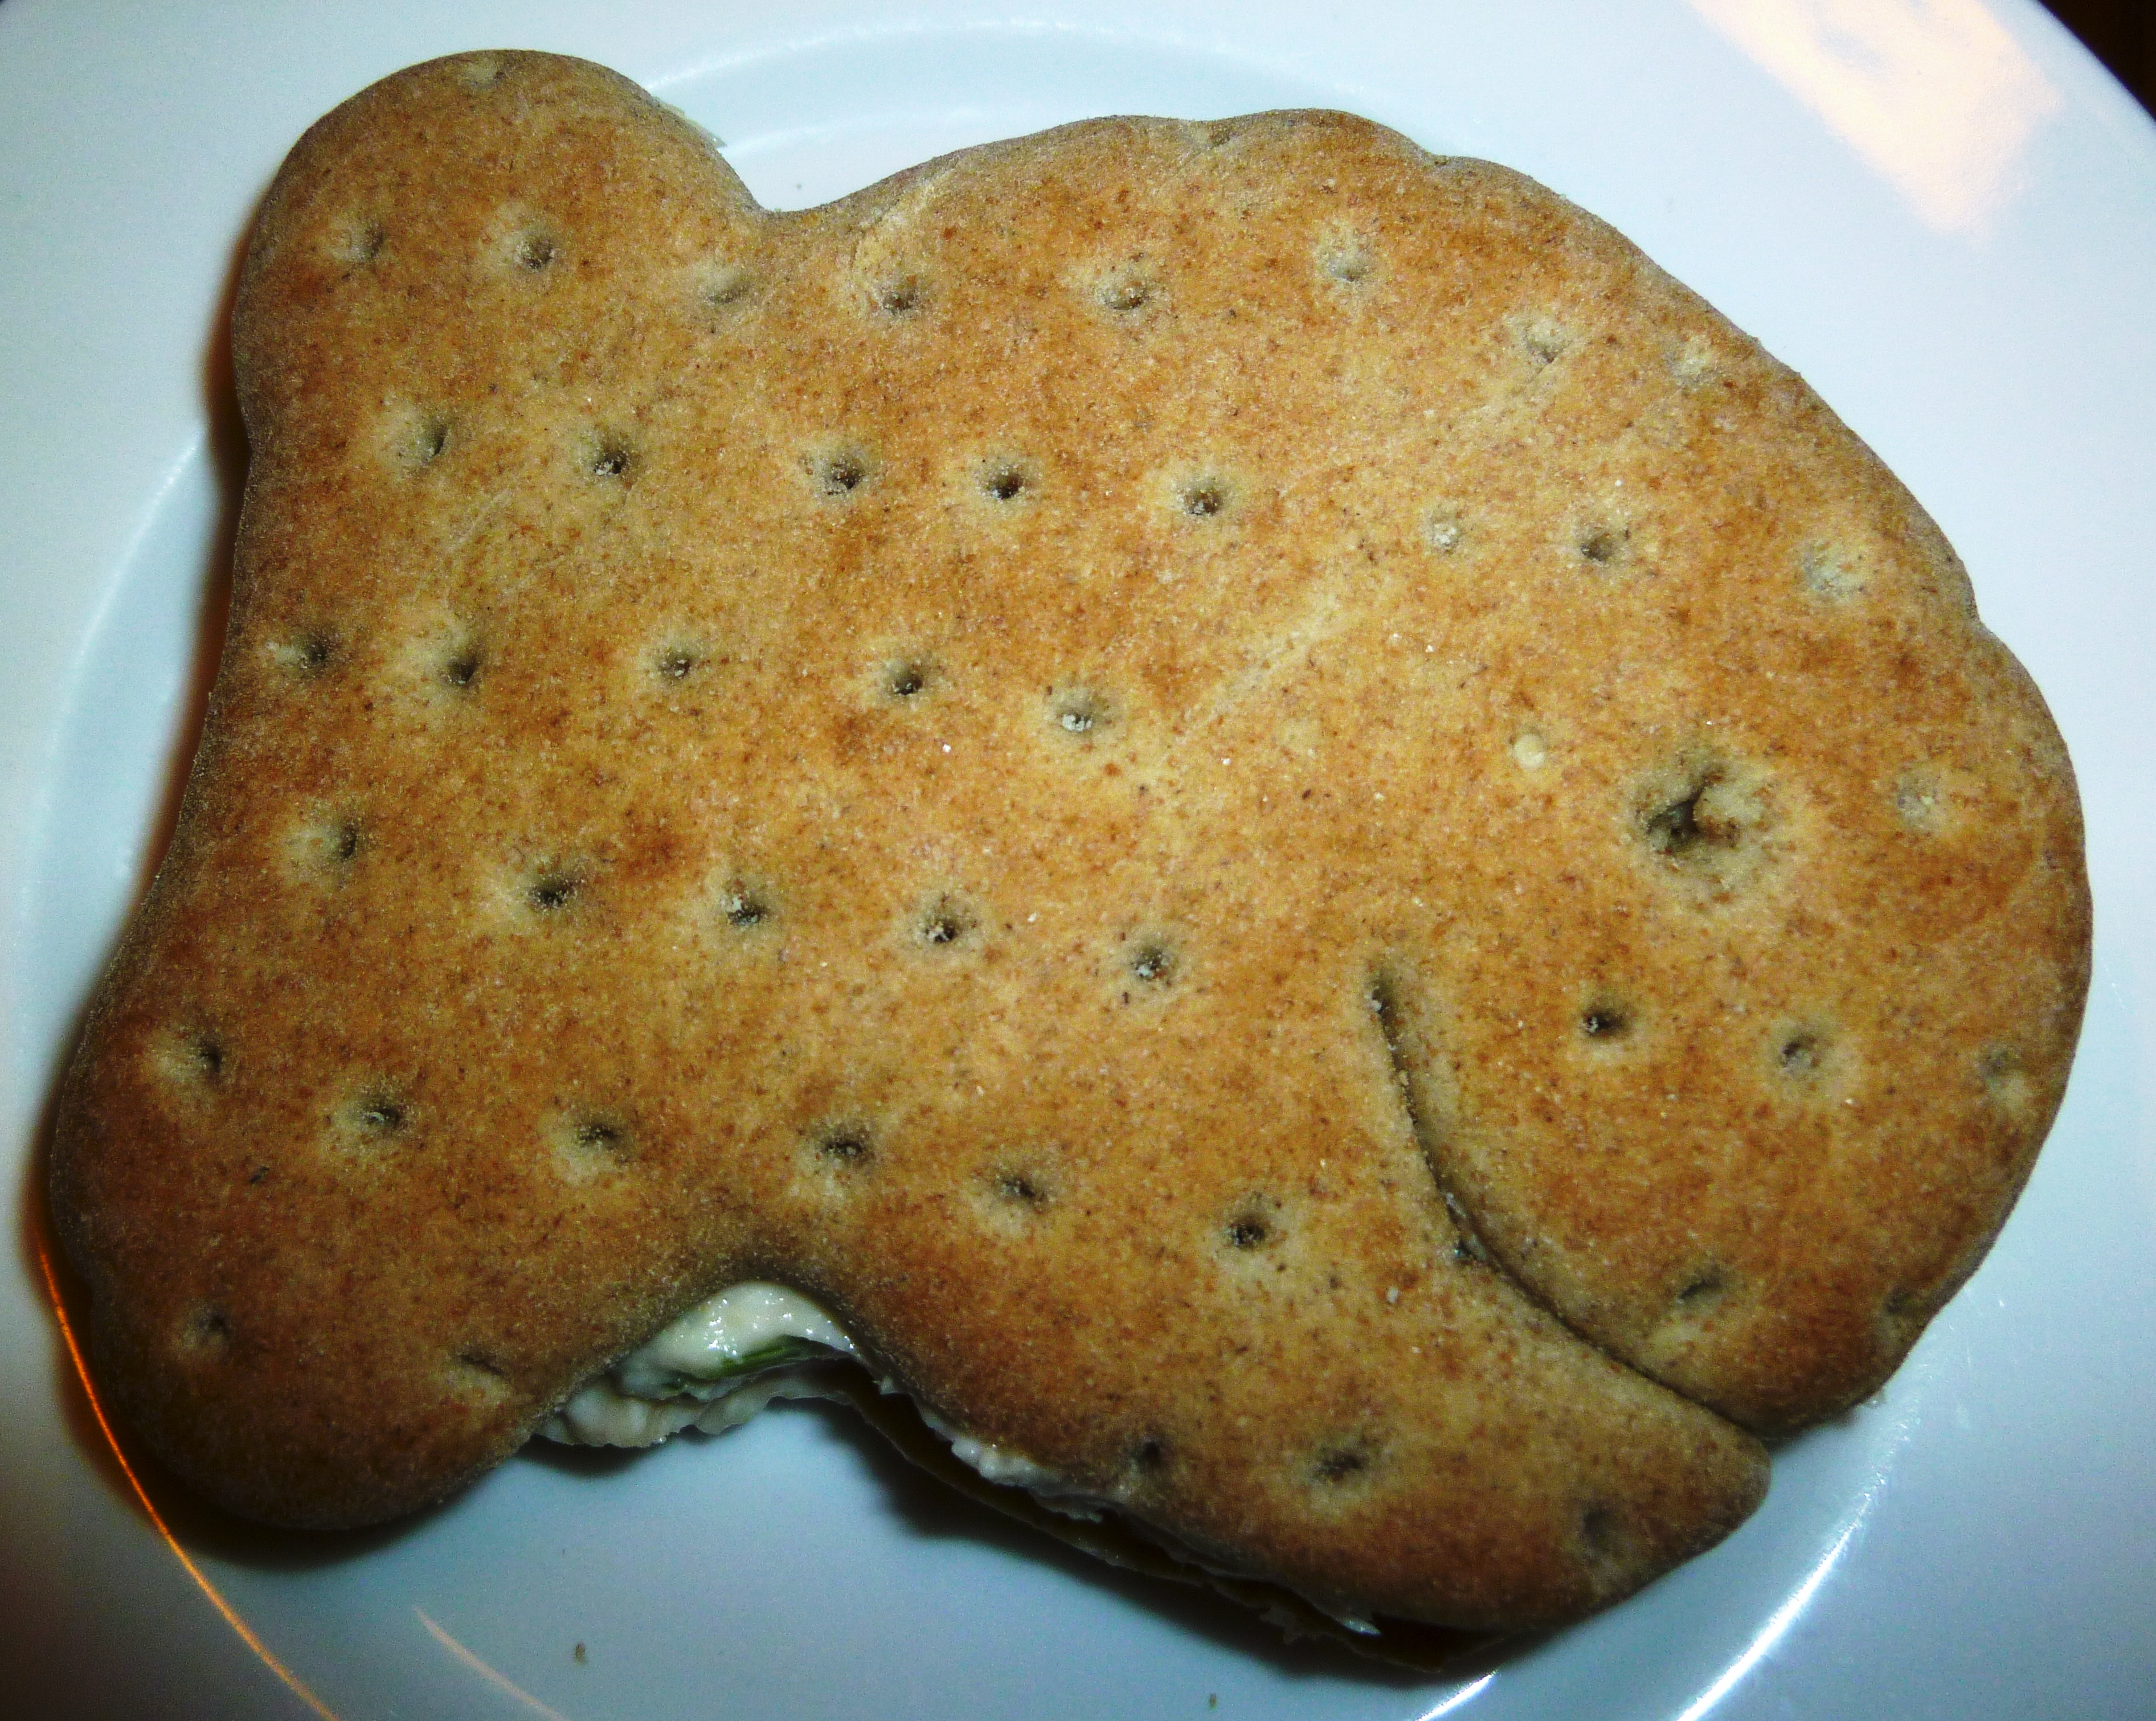 Tuna Fish Sandwich For Kids Images & Pictures - Becuo